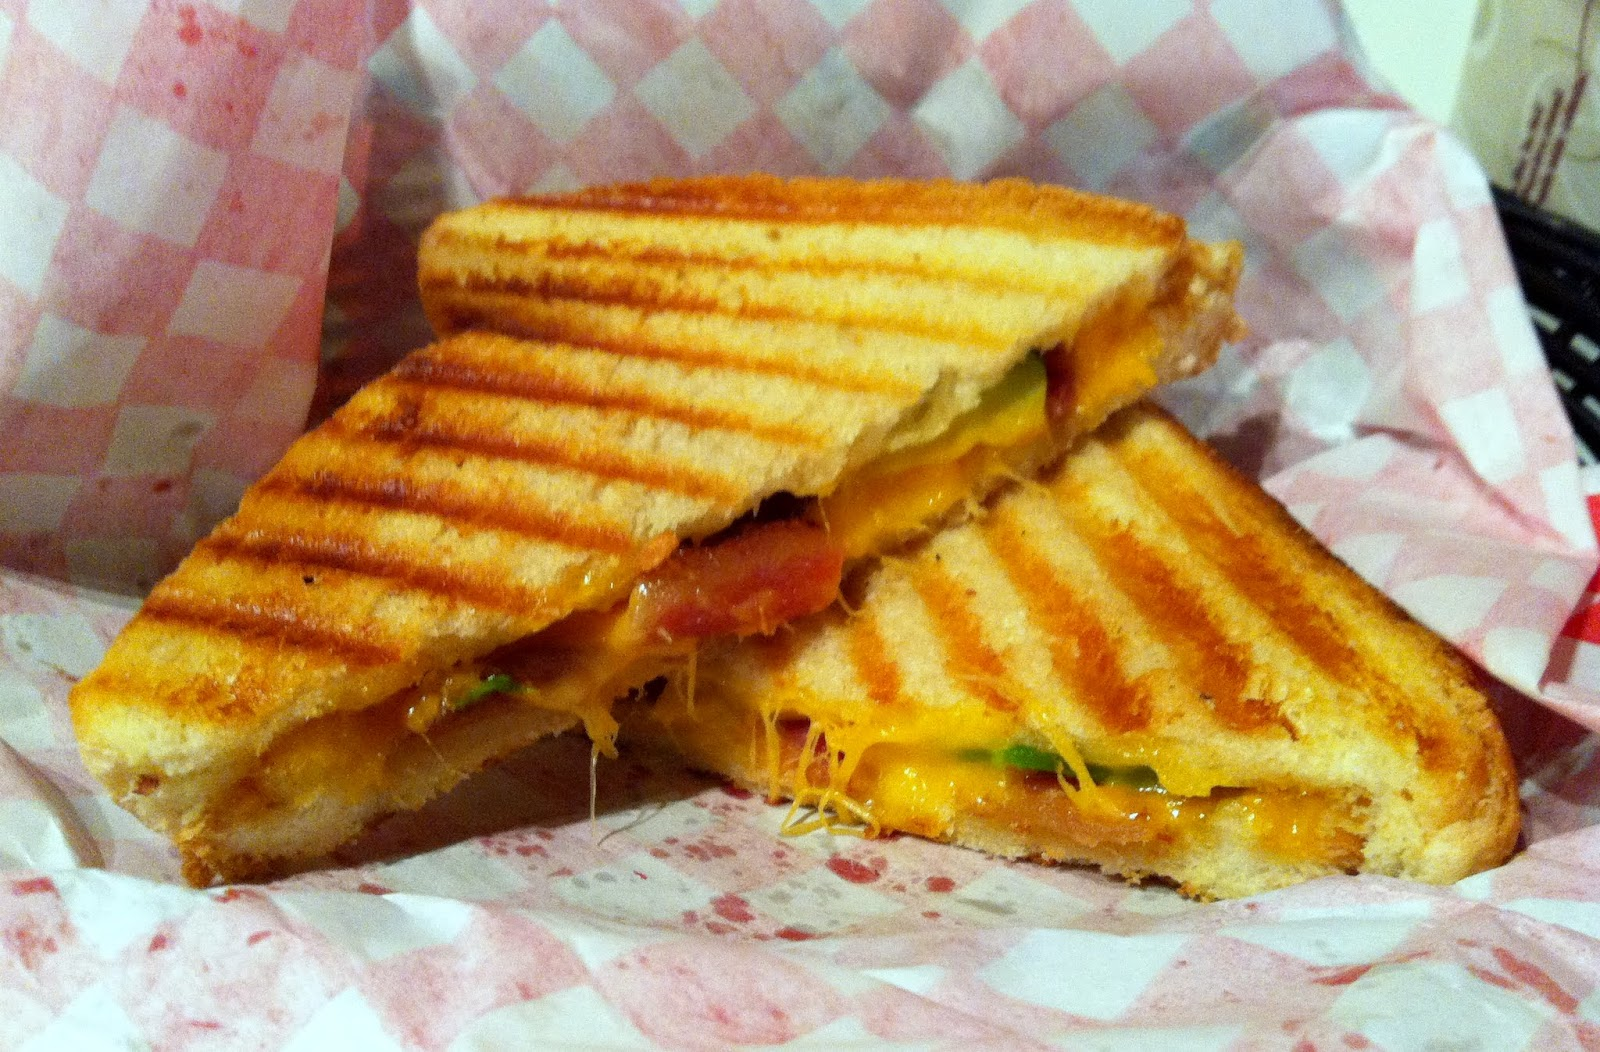 Her deluxe grilled cheese was made with cheddar, tomato and avocado ...